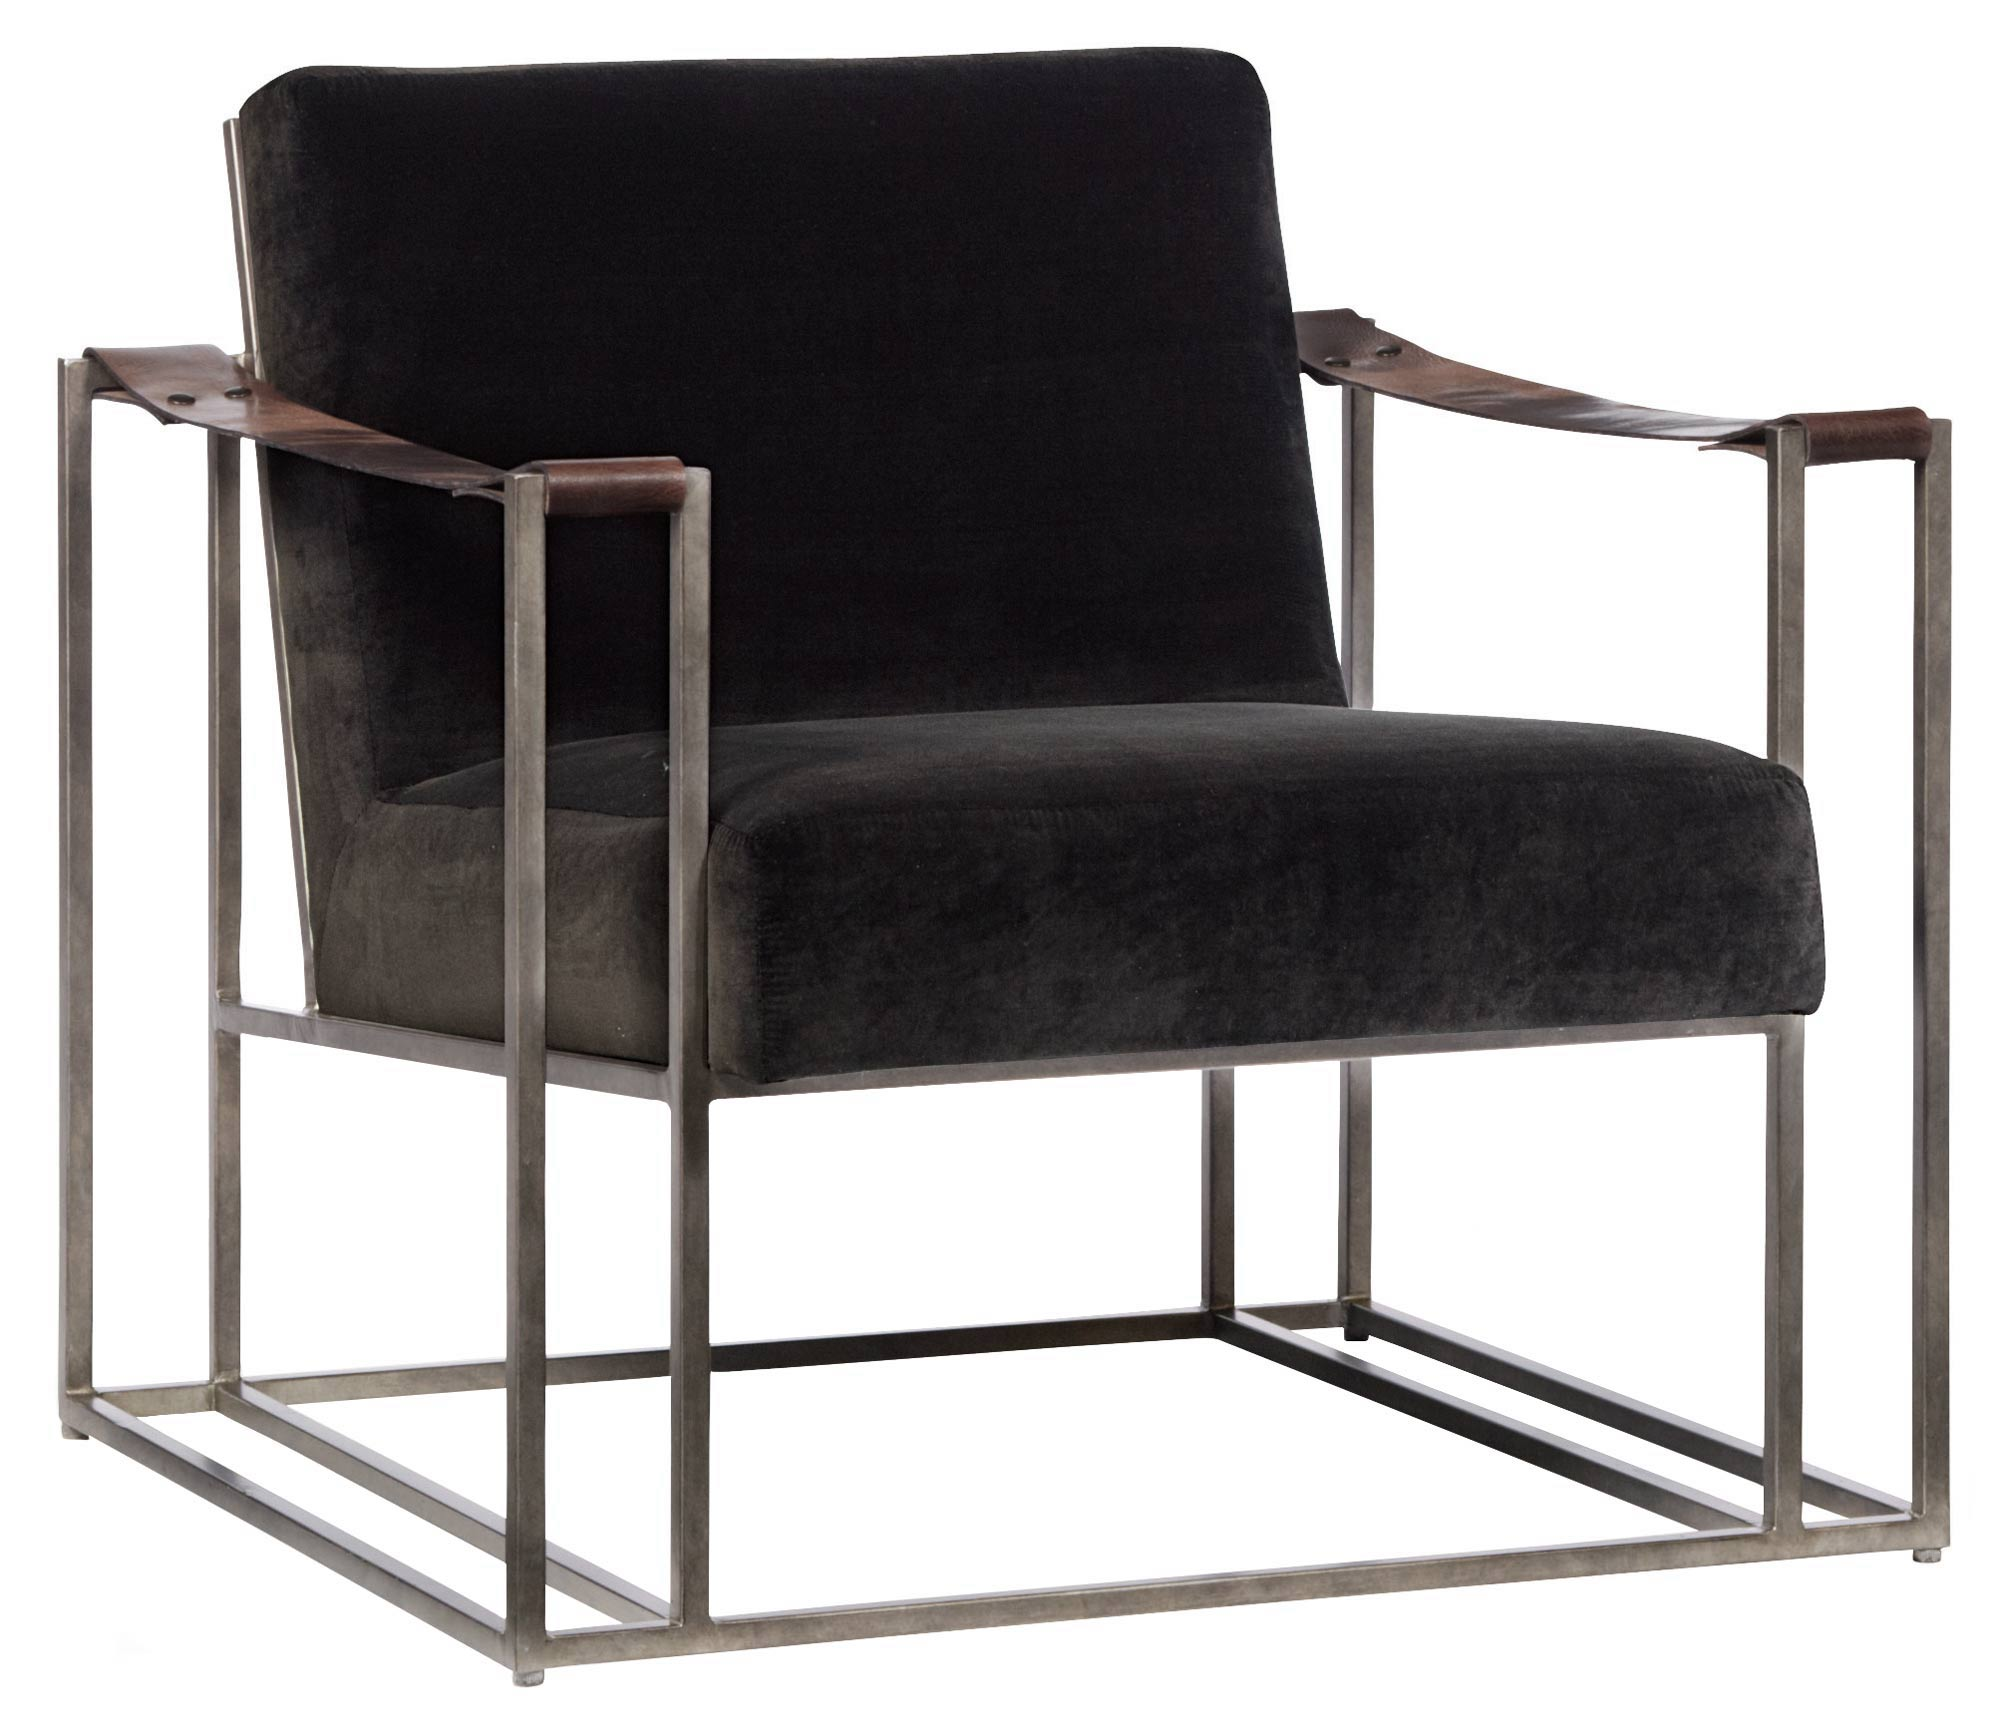 Bernhardt Furniture Dekker Chair